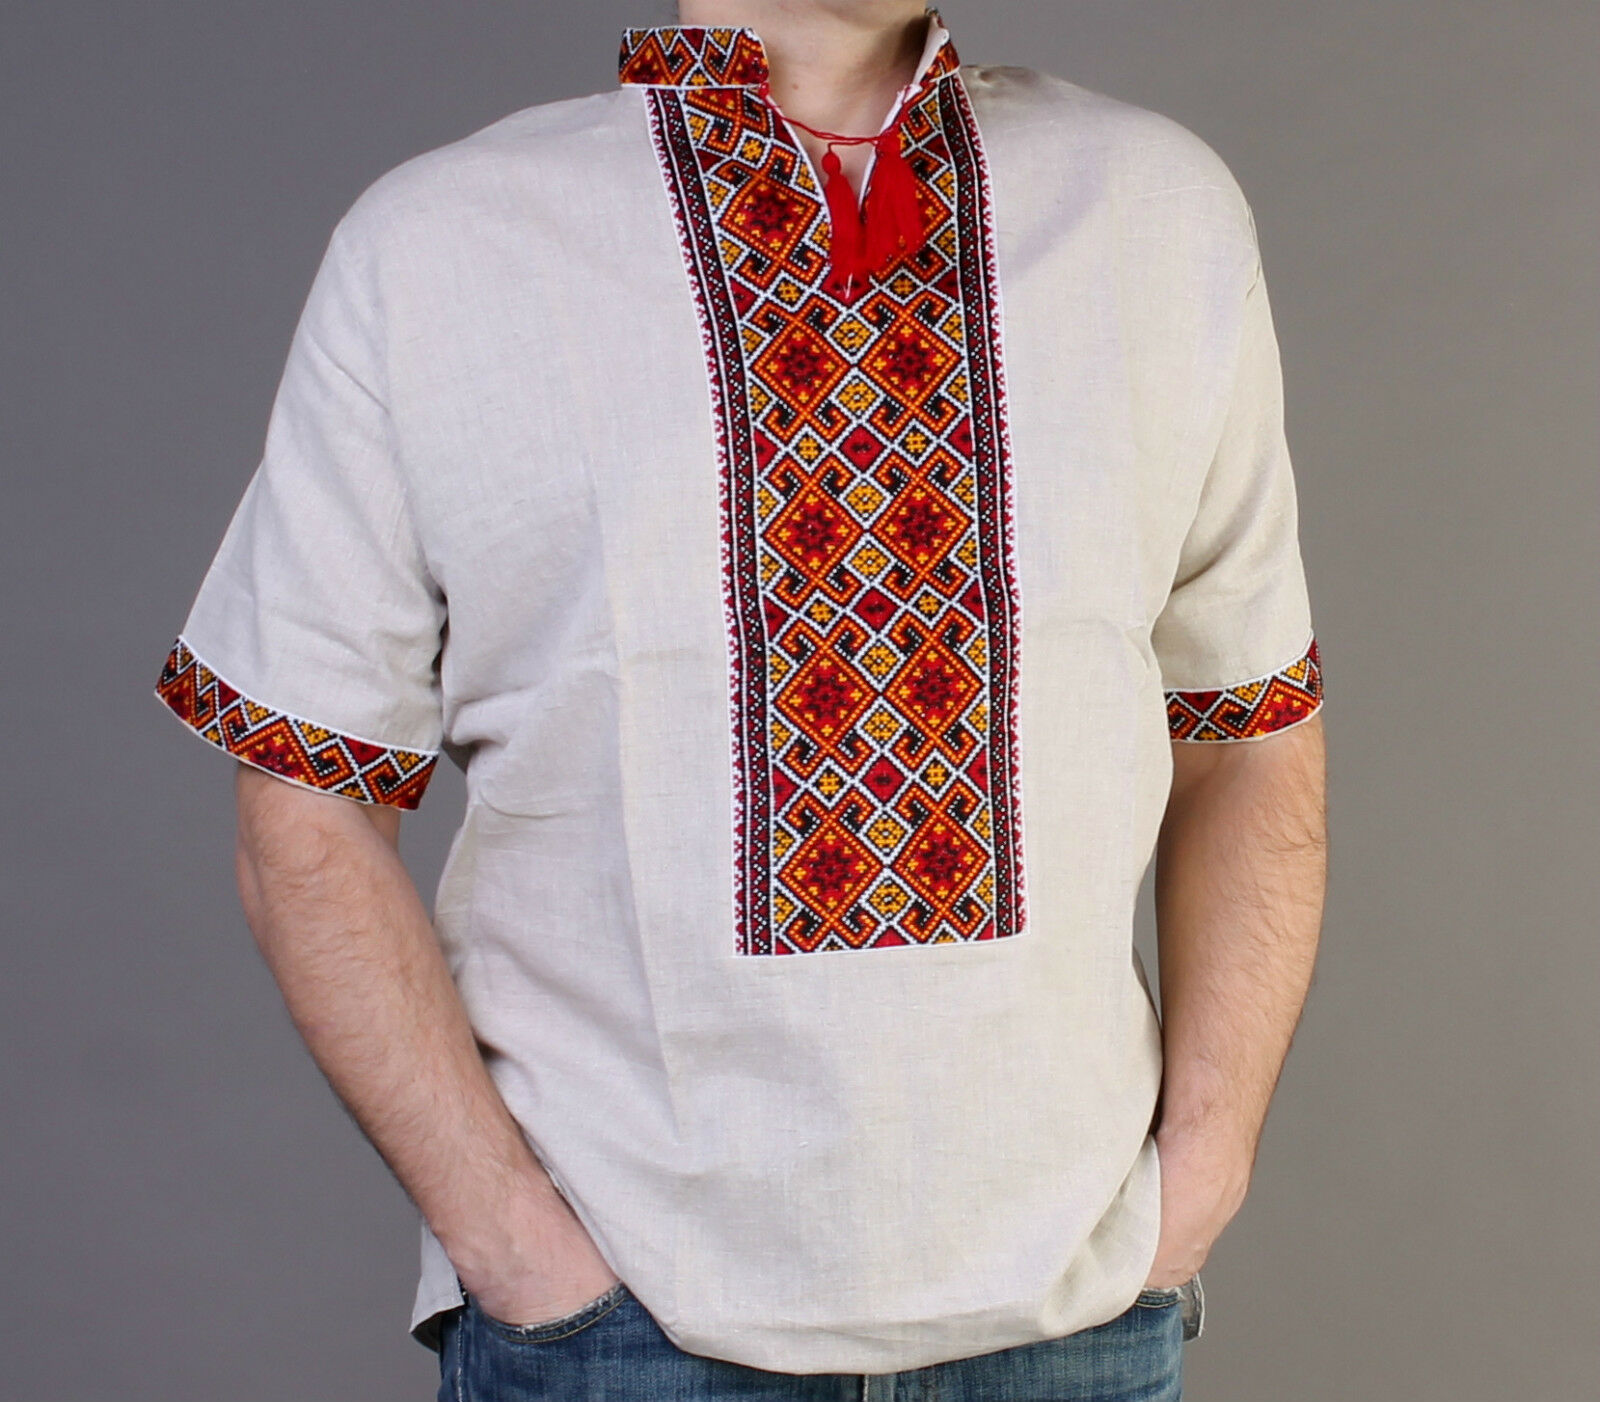 Vyshyvanka men Ukraine Hutsul inen shirt short sleeve XL Easter Gift